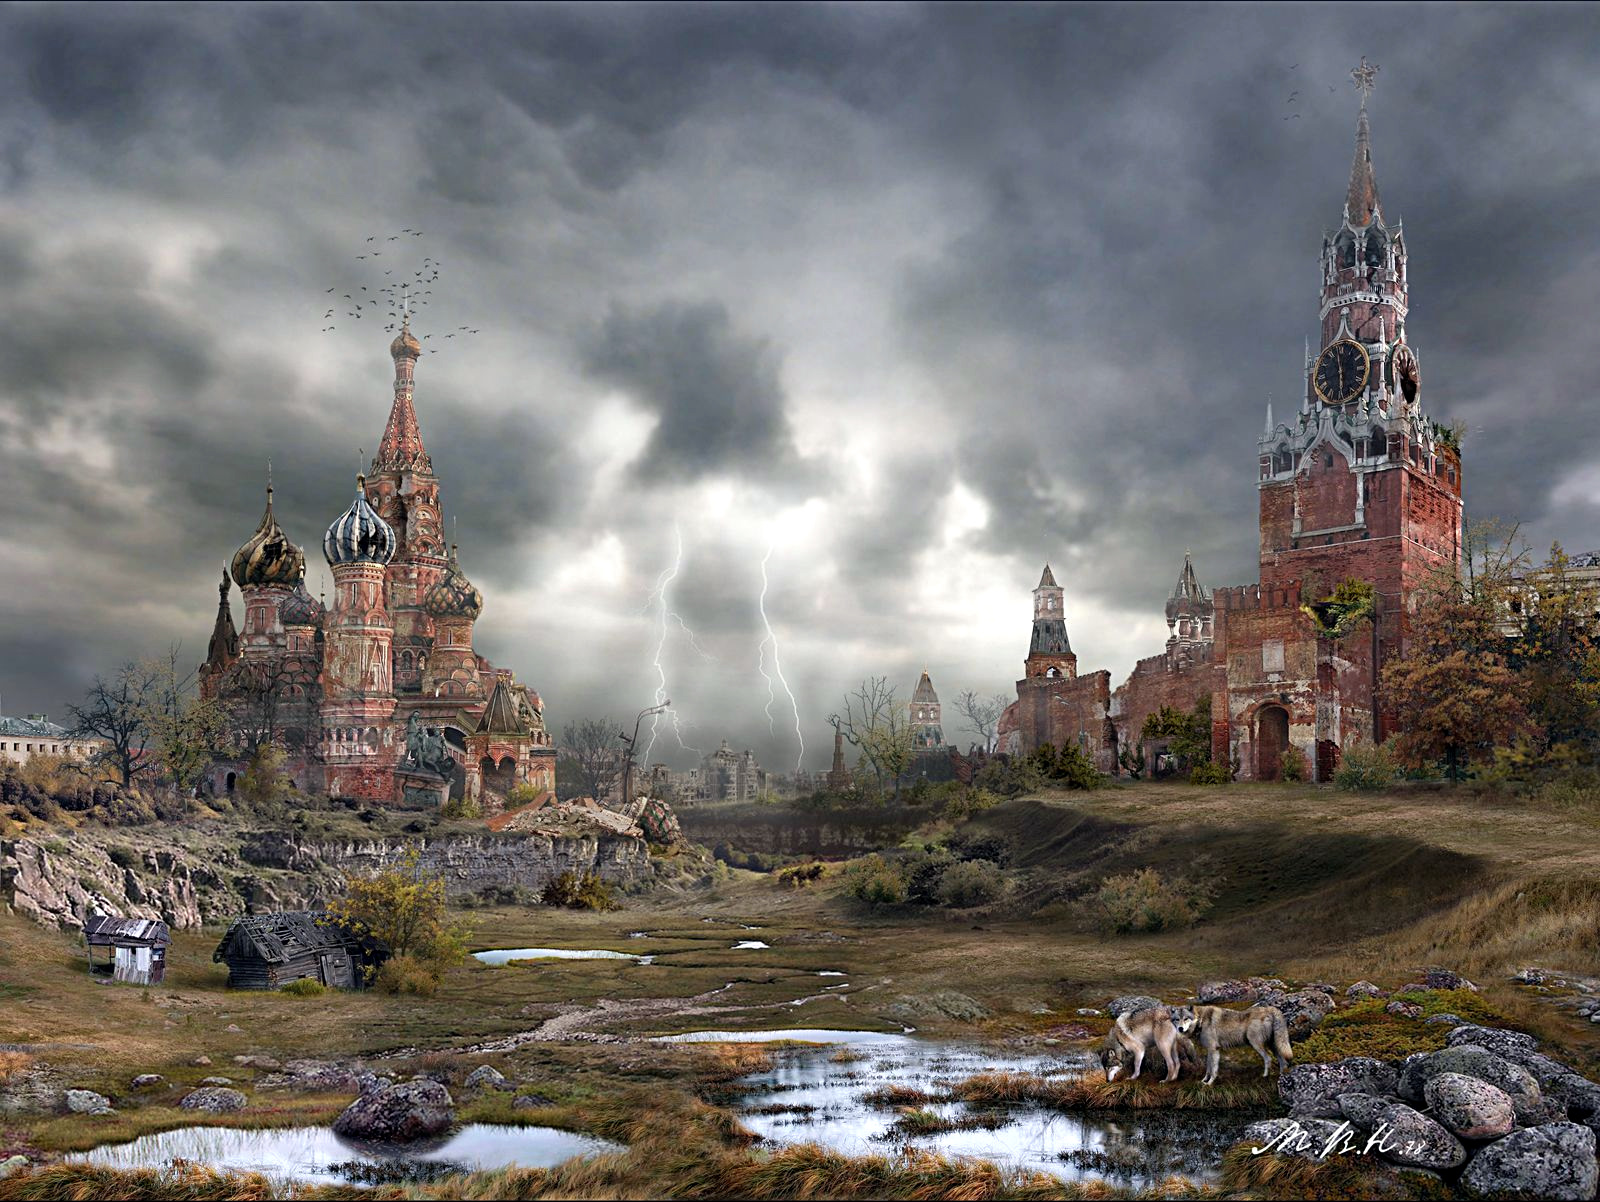 https://russiatrek.org/blog/wp-content/uploads/2010/04/moscow-city-red-square-possible-future-2.jpg